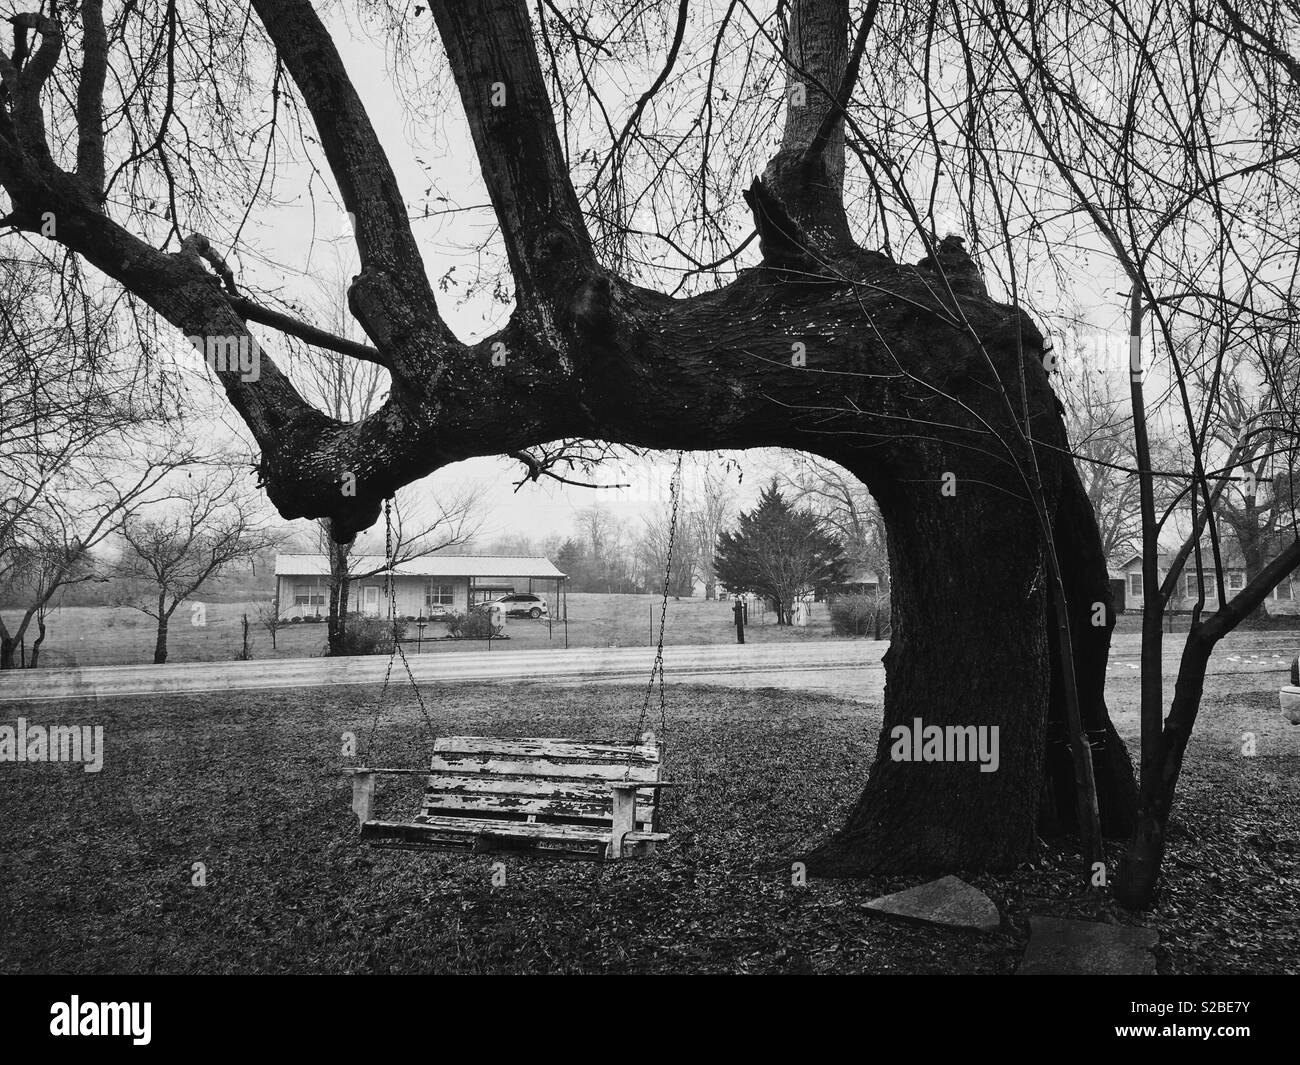 A black and white photo of an old swing on a tree on a winter day